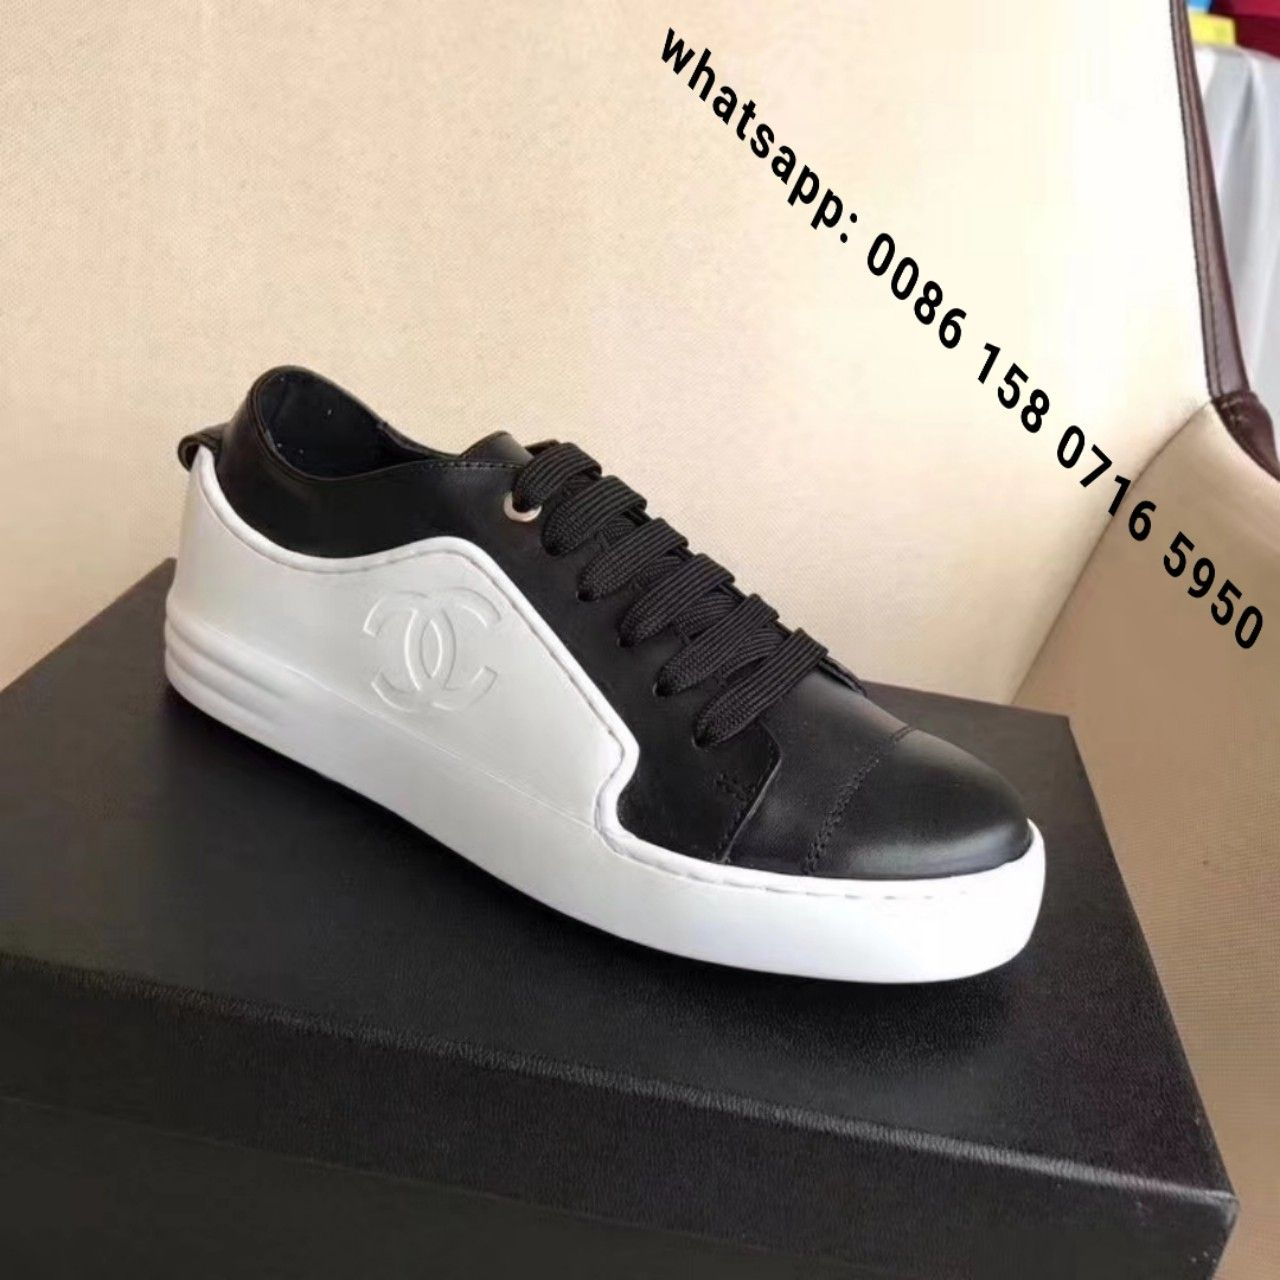 Chanel Shoes Women Chanel Sneakers Please Contact Me When You Want